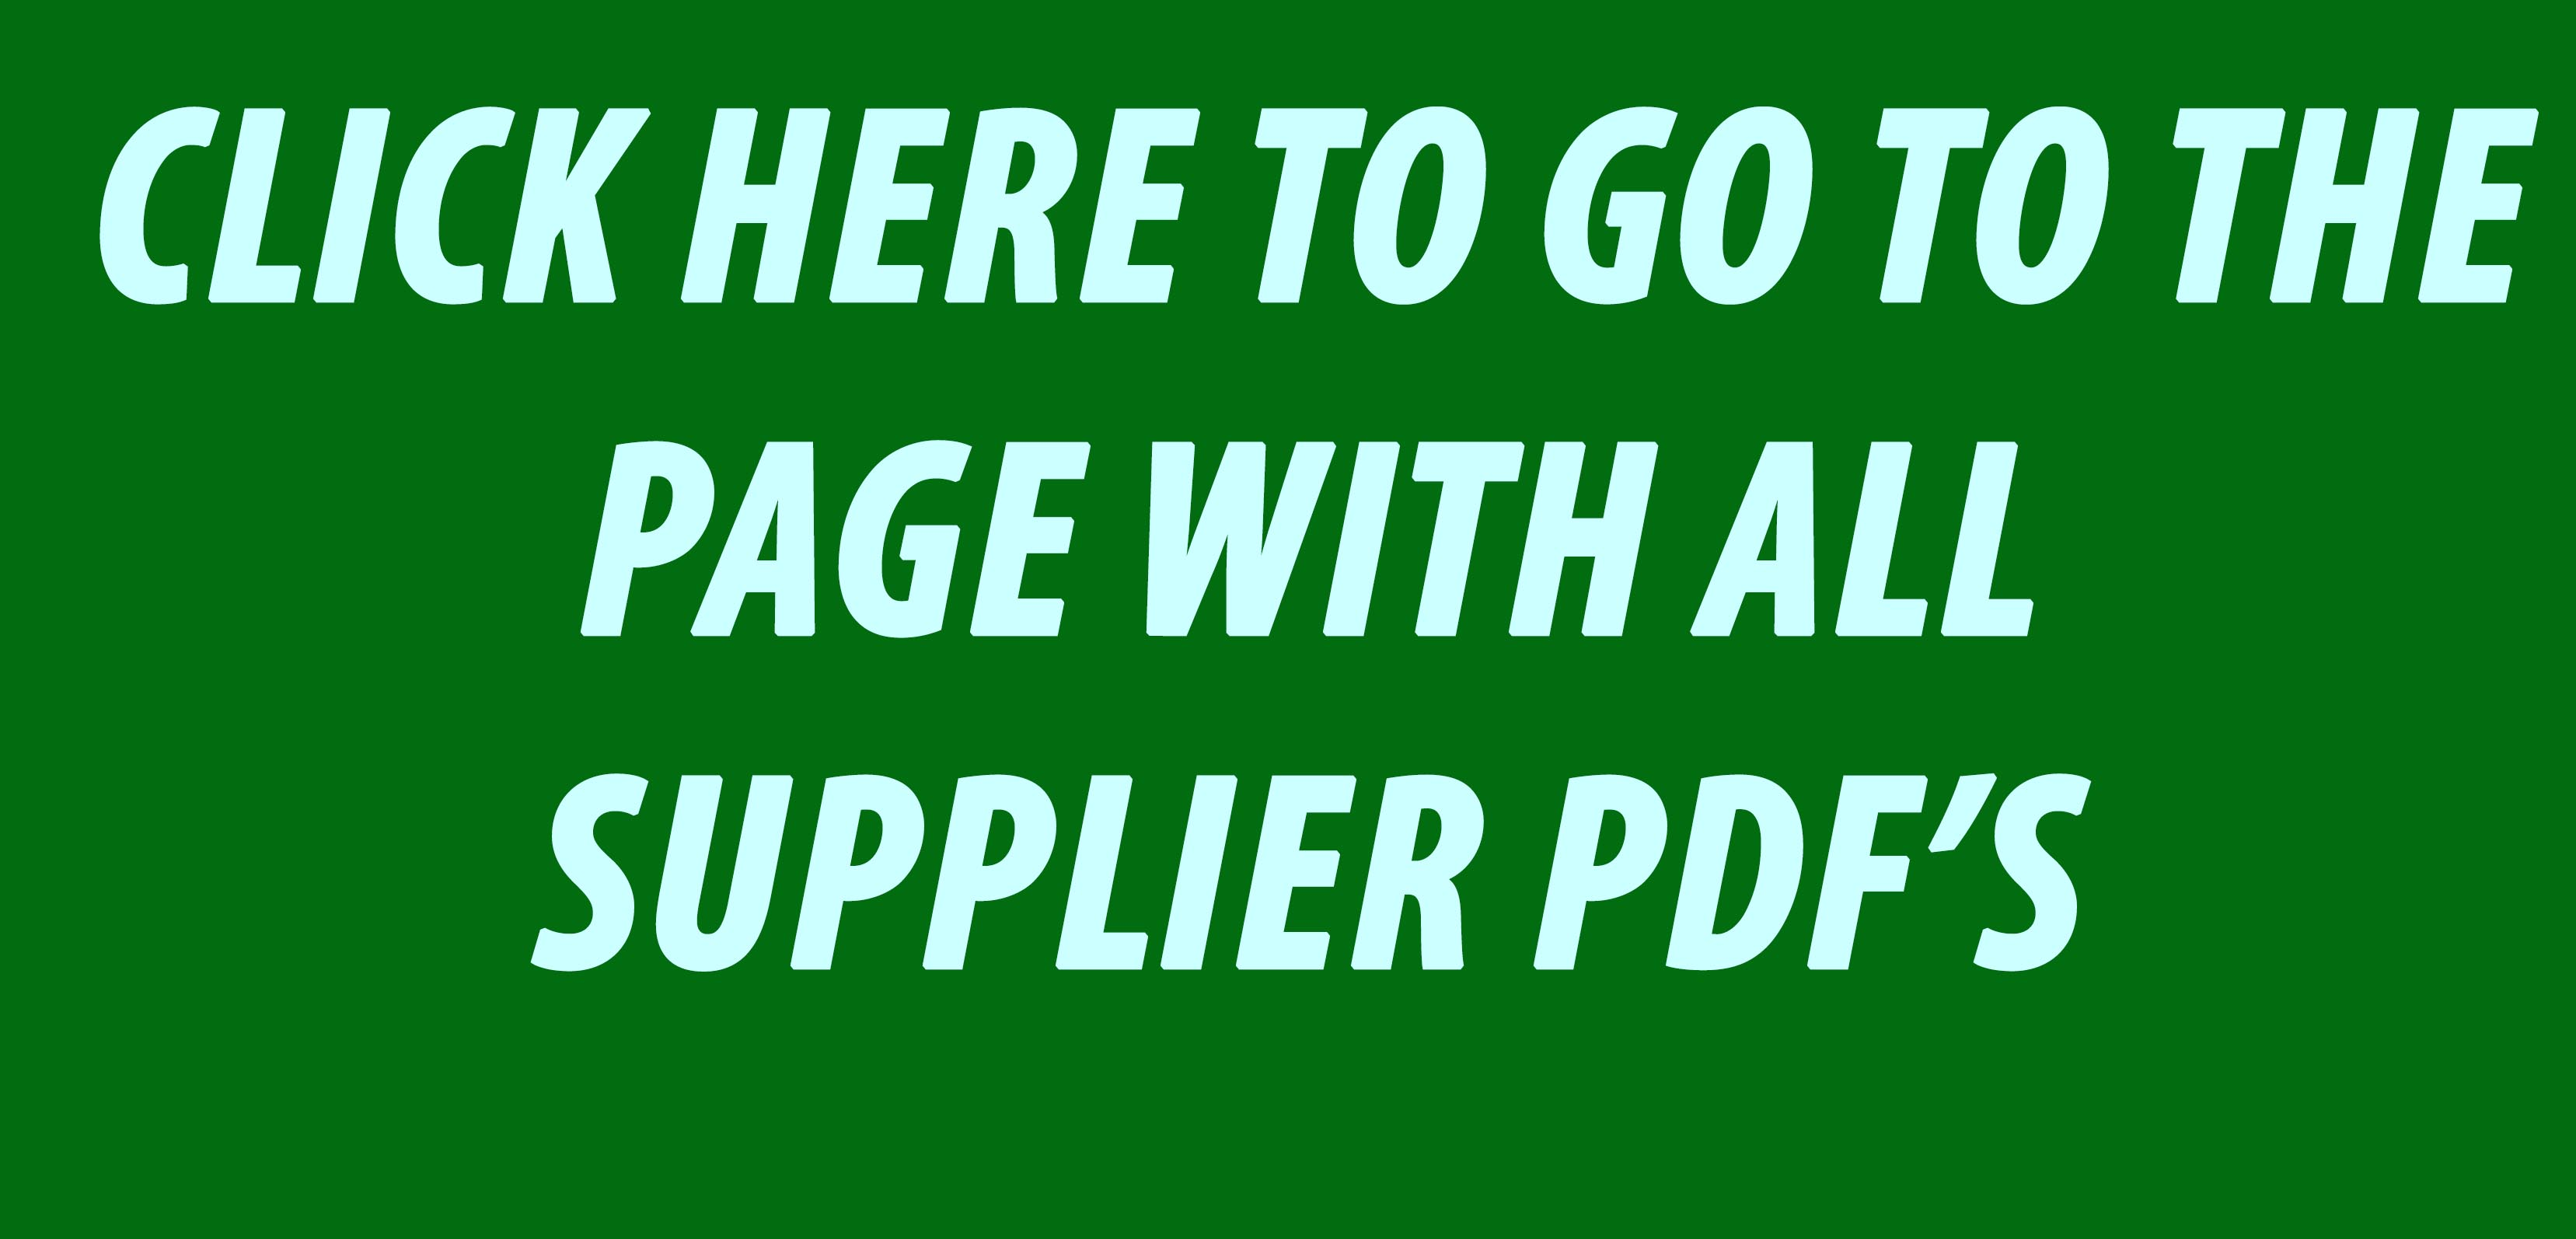 ALL PDFS